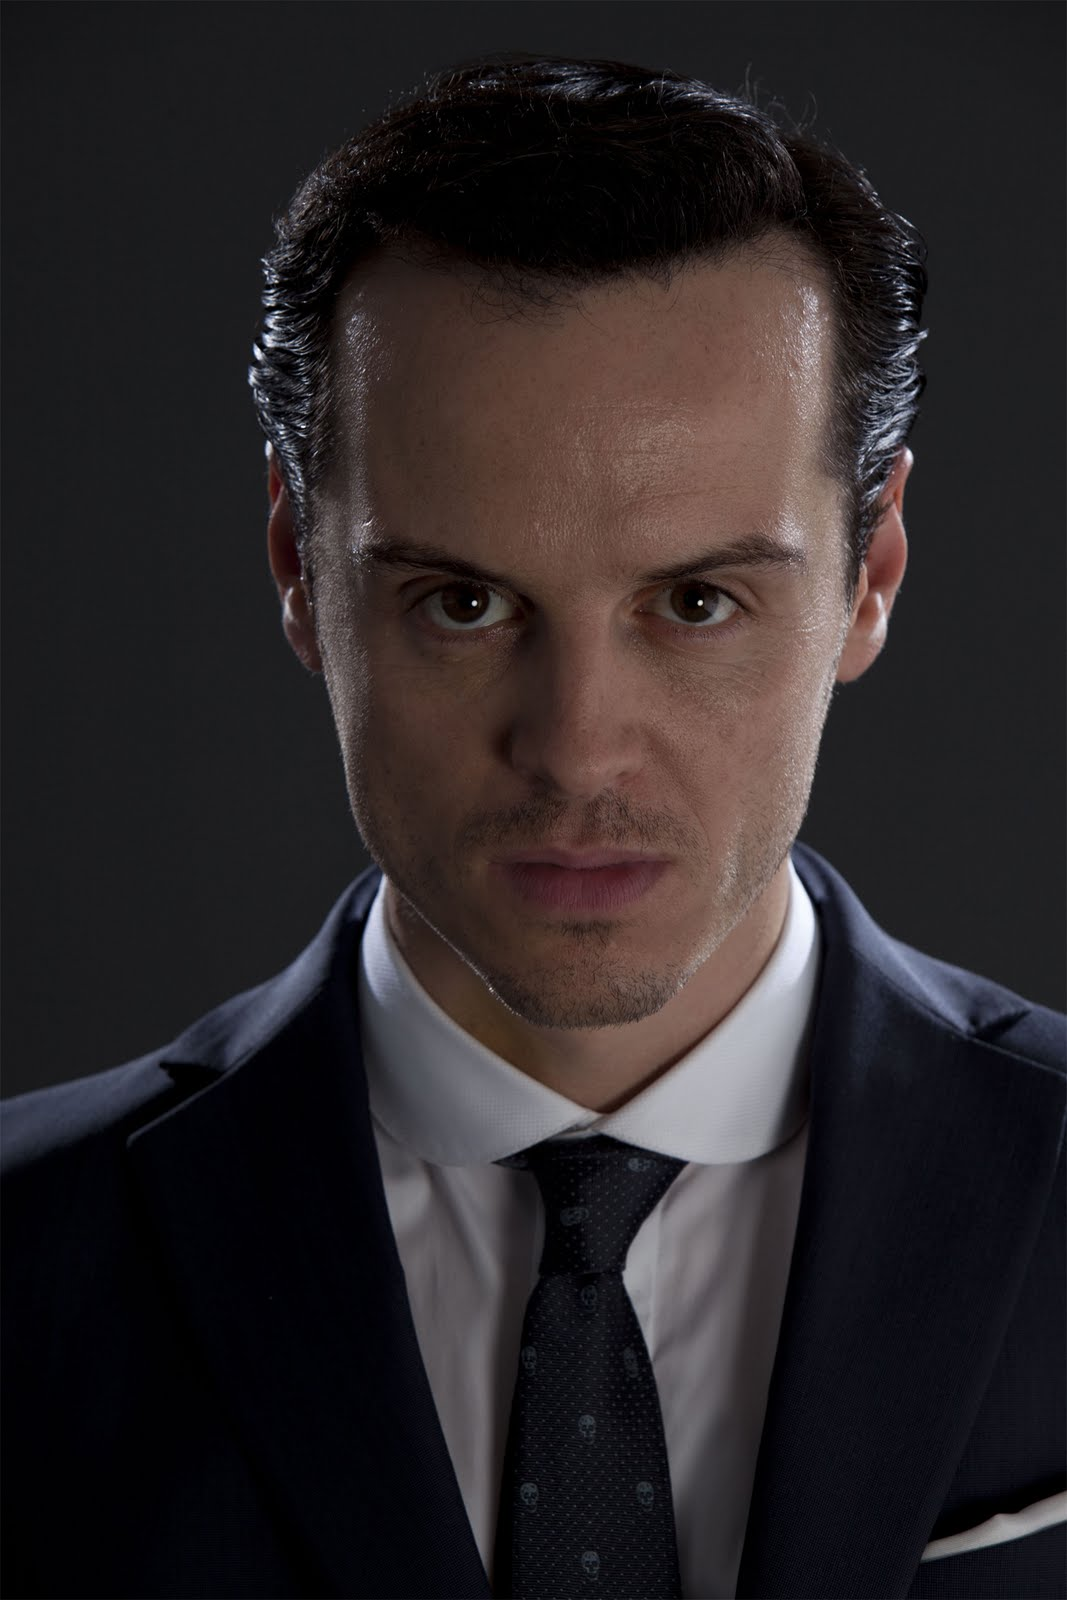 jim moriarty images hd - photo #36